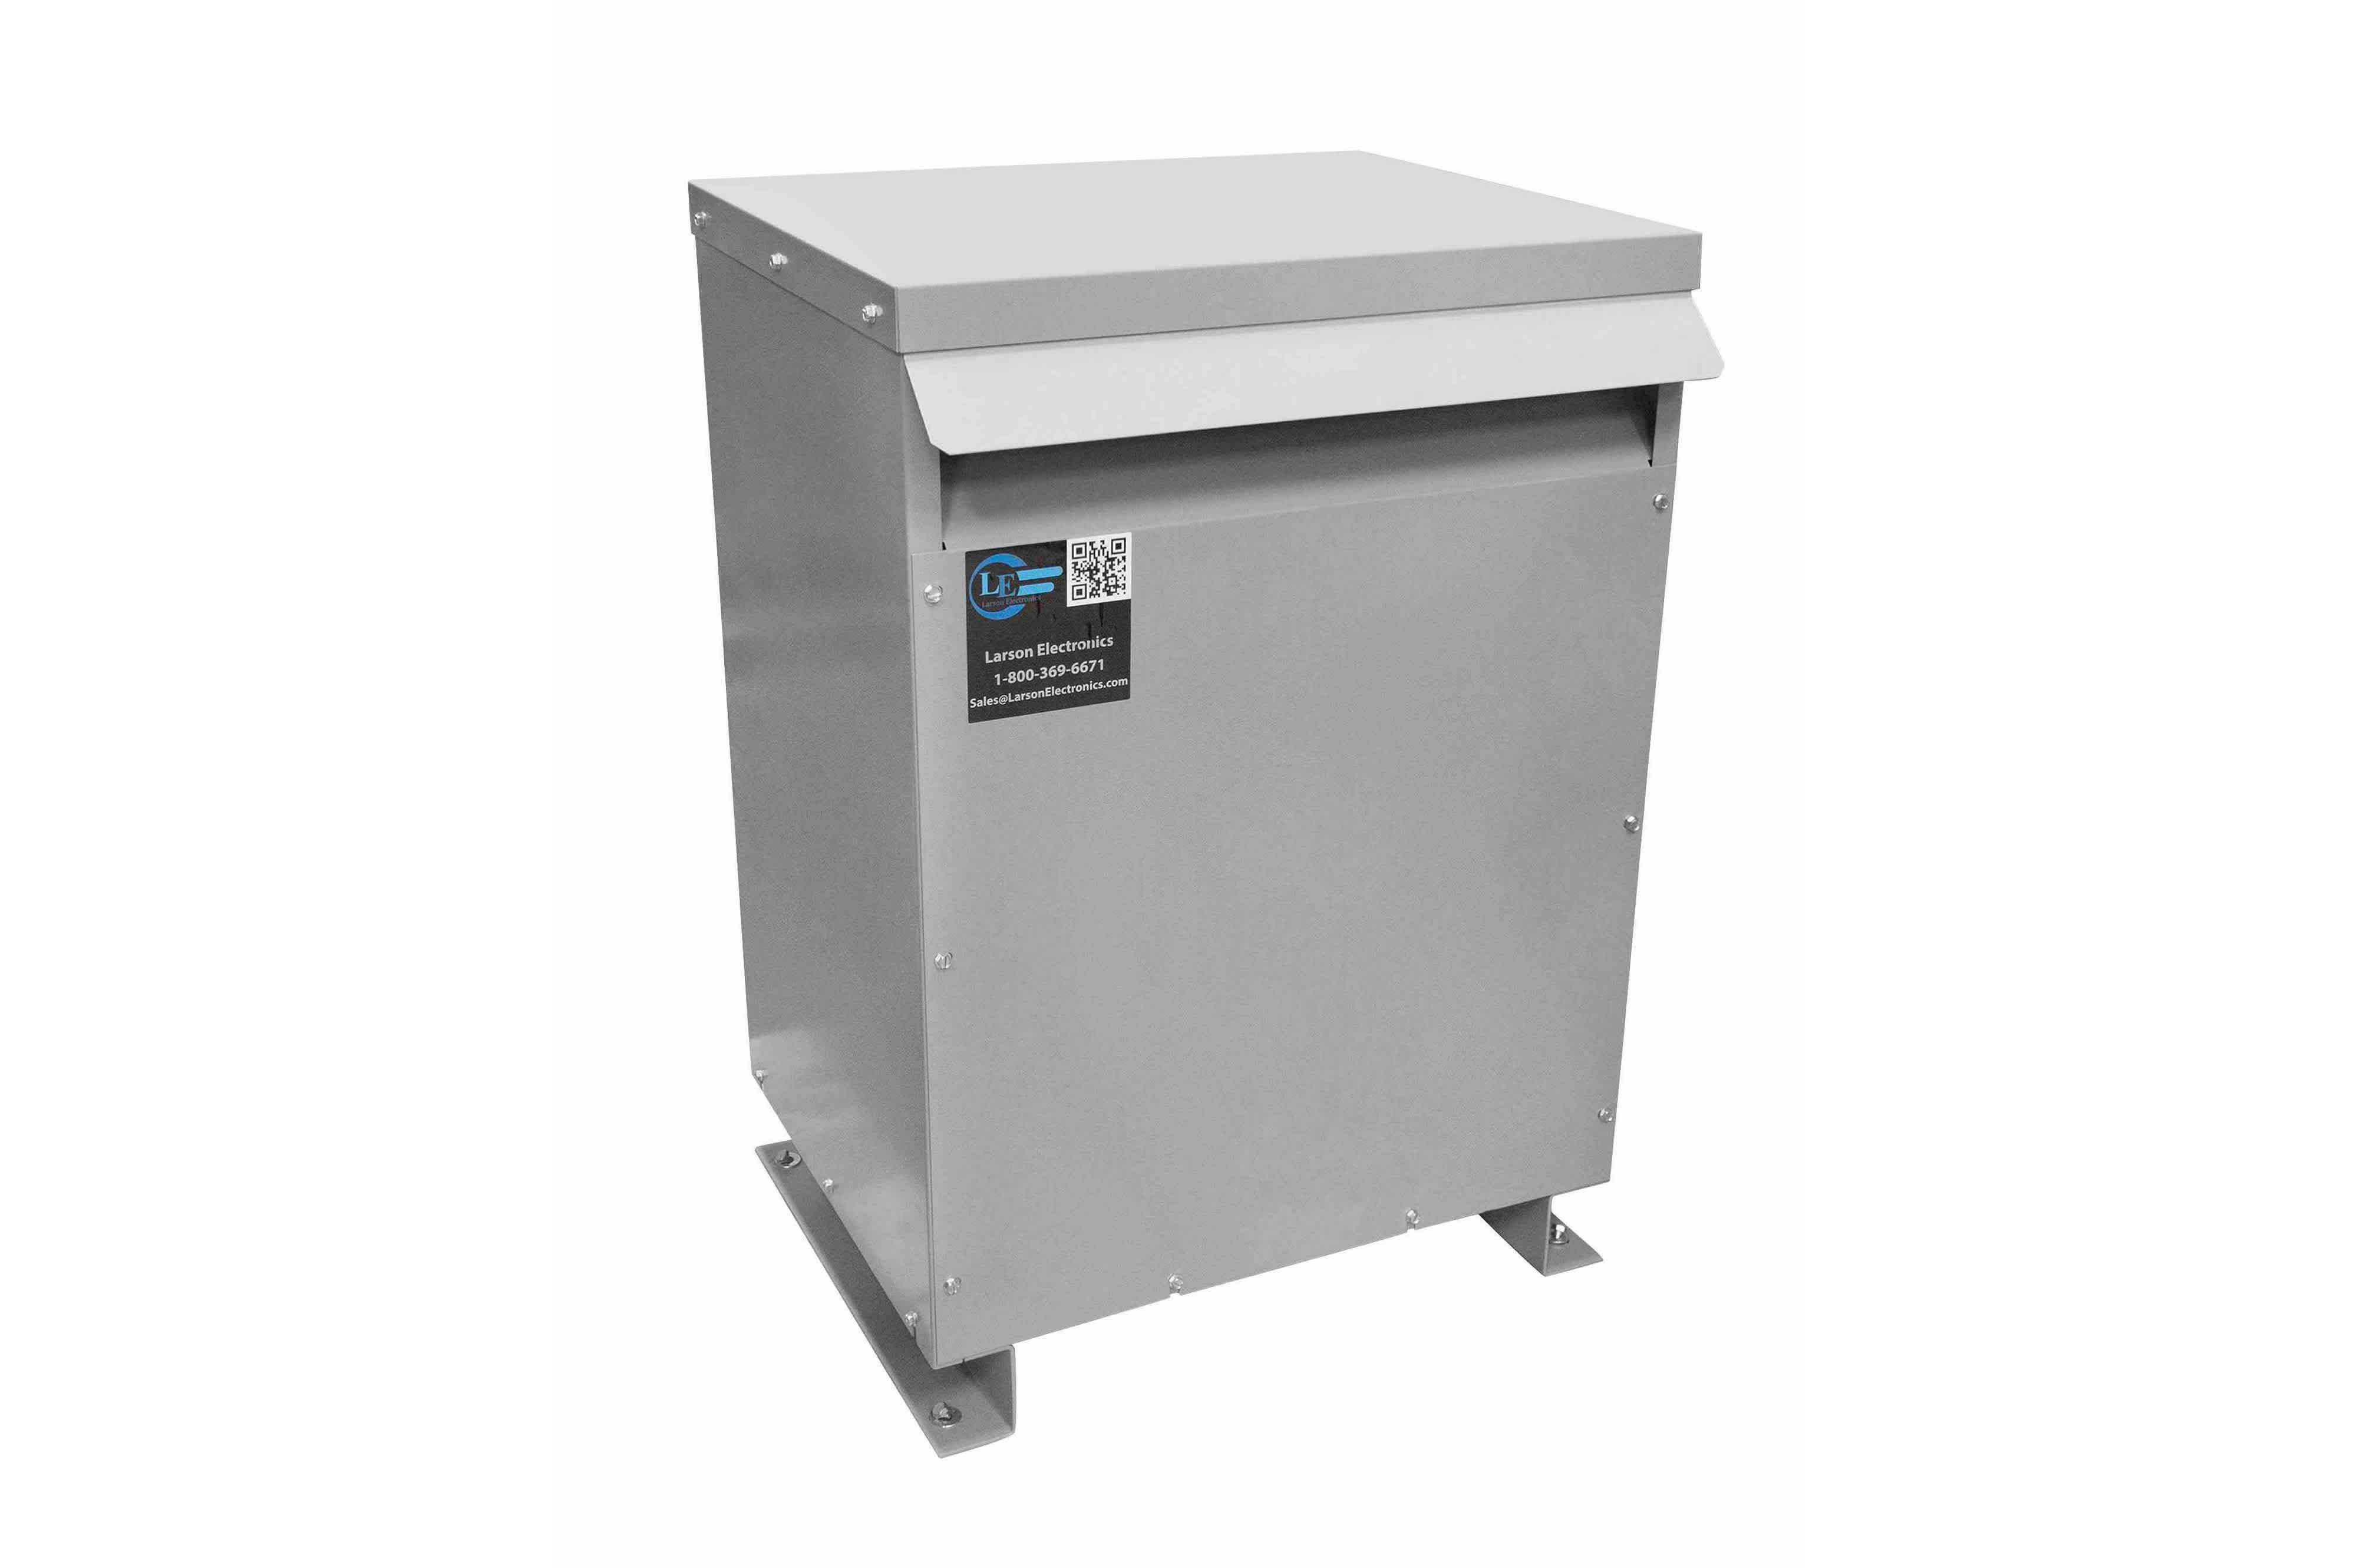 90 kVA 3PH Isolation Transformer, 400V Delta Primary, 480V Delta Secondary, N3R, Ventilated, 60 Hz